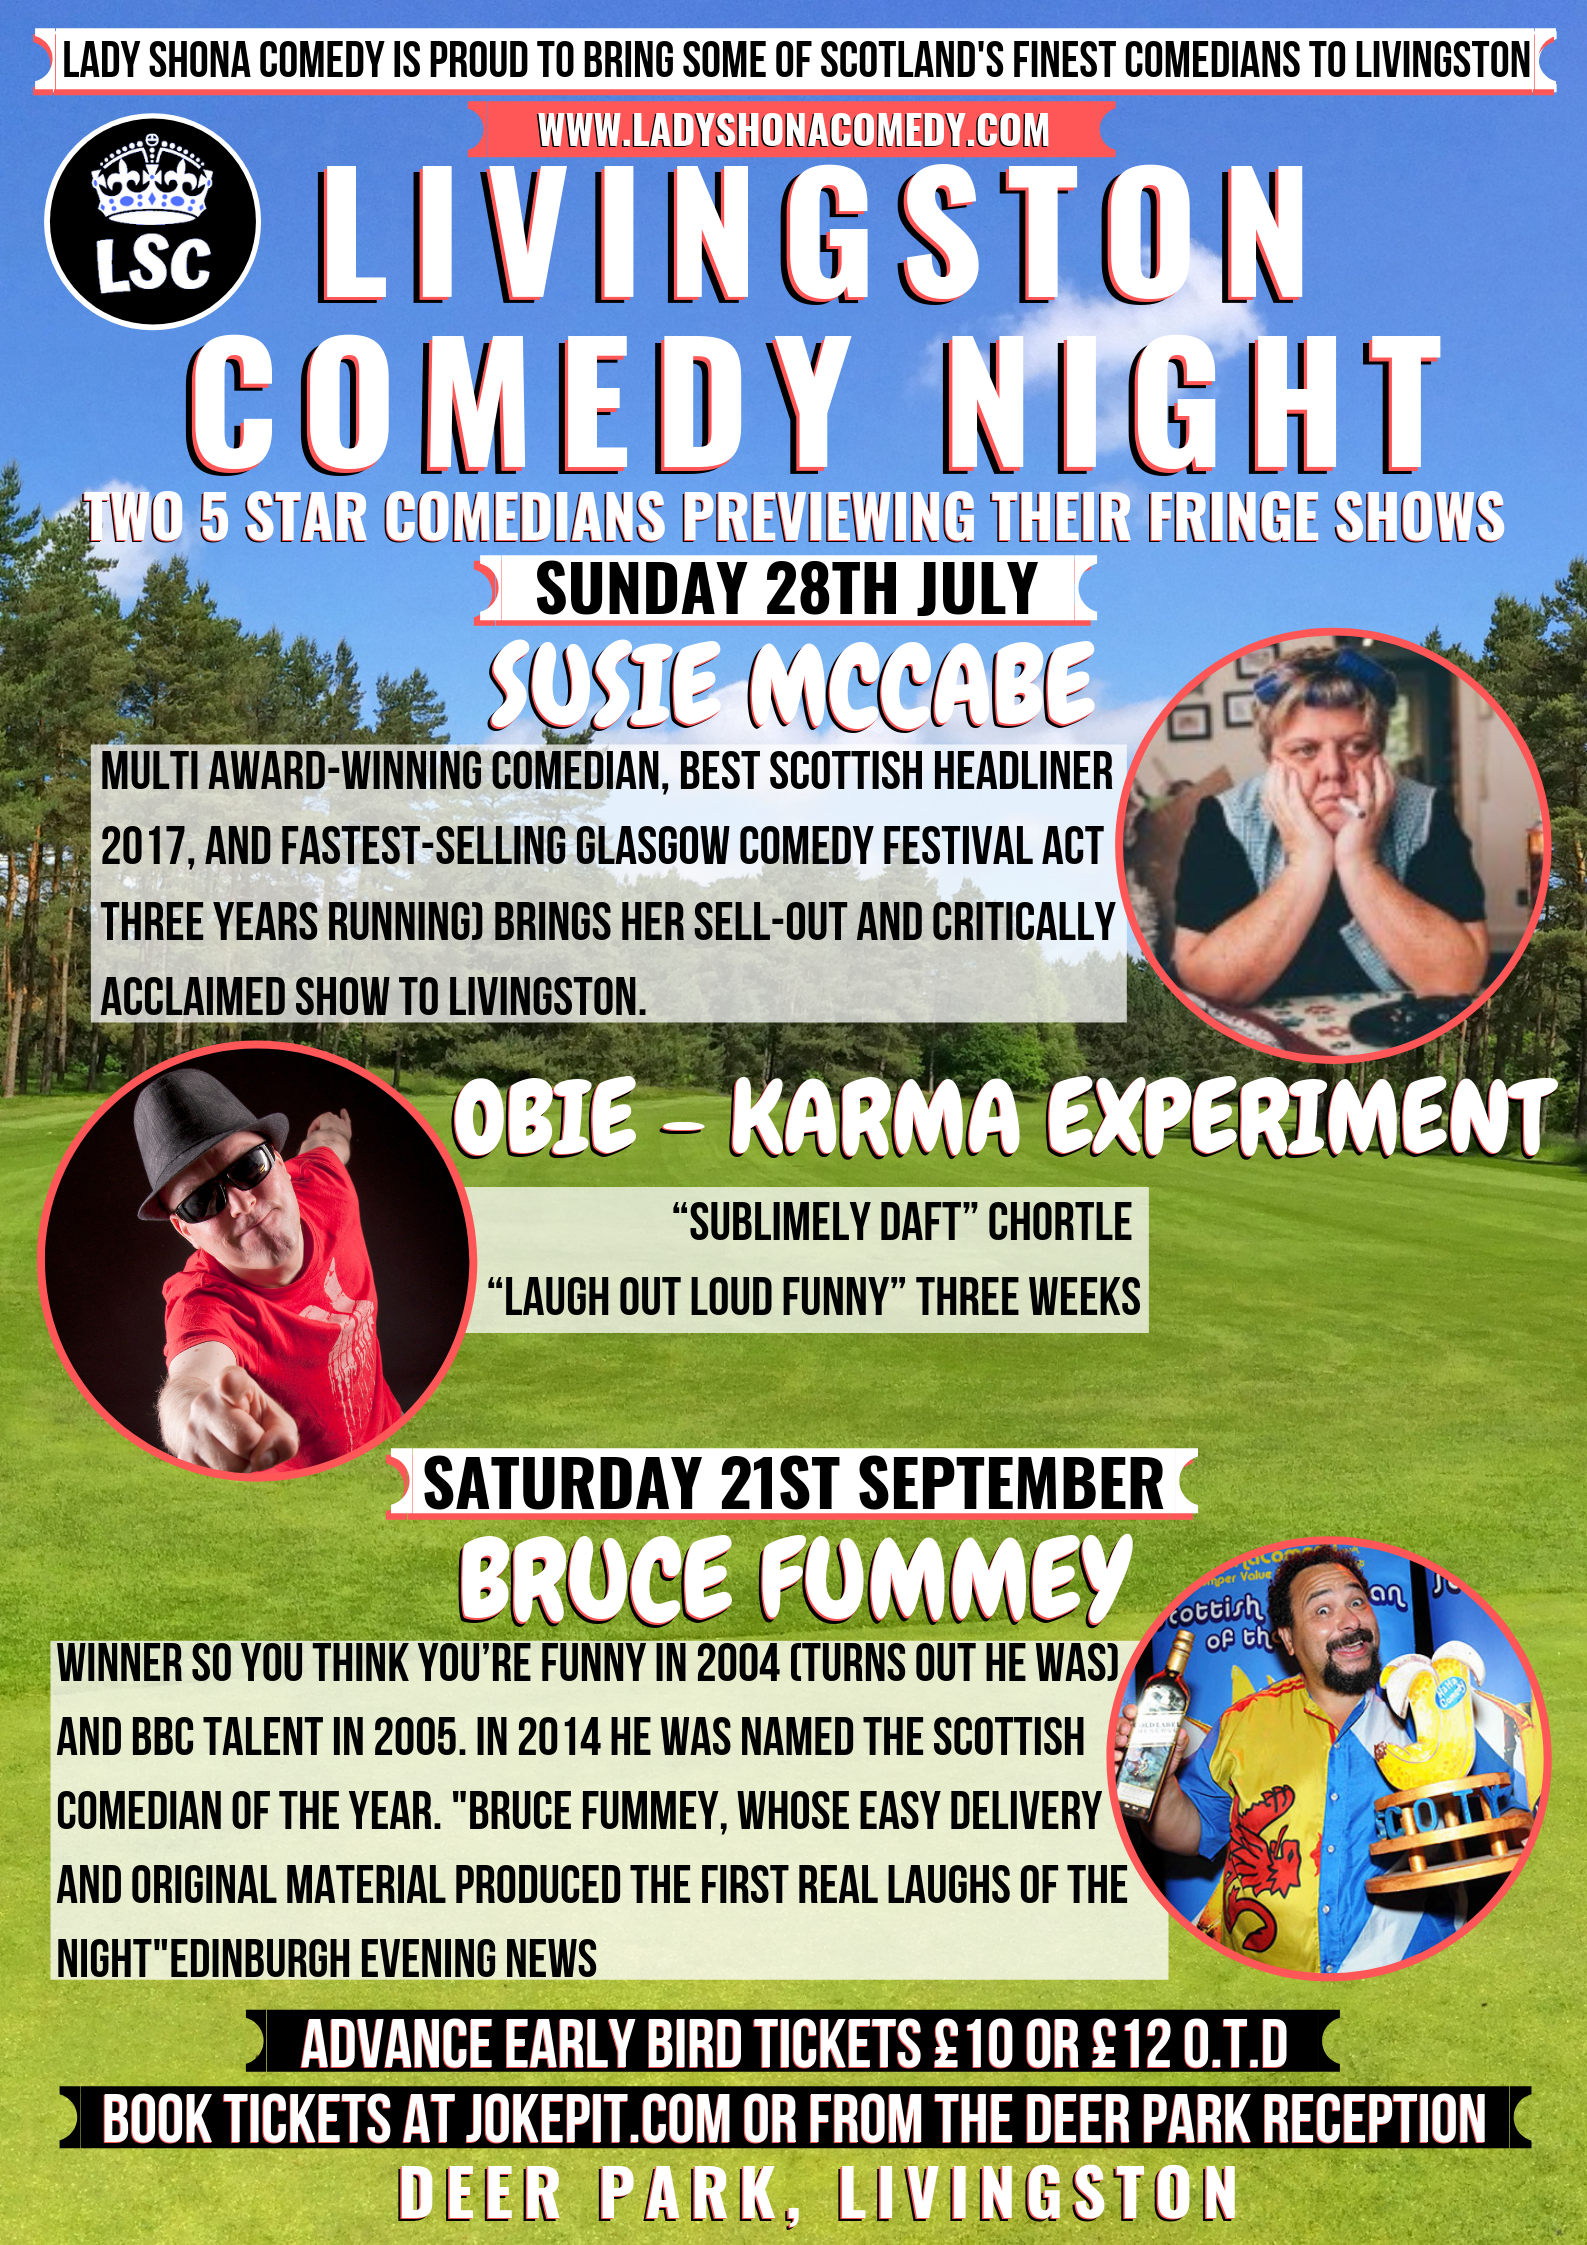 The livingston golf course lady shona comedy livingston comedy night 28th july 21st sept